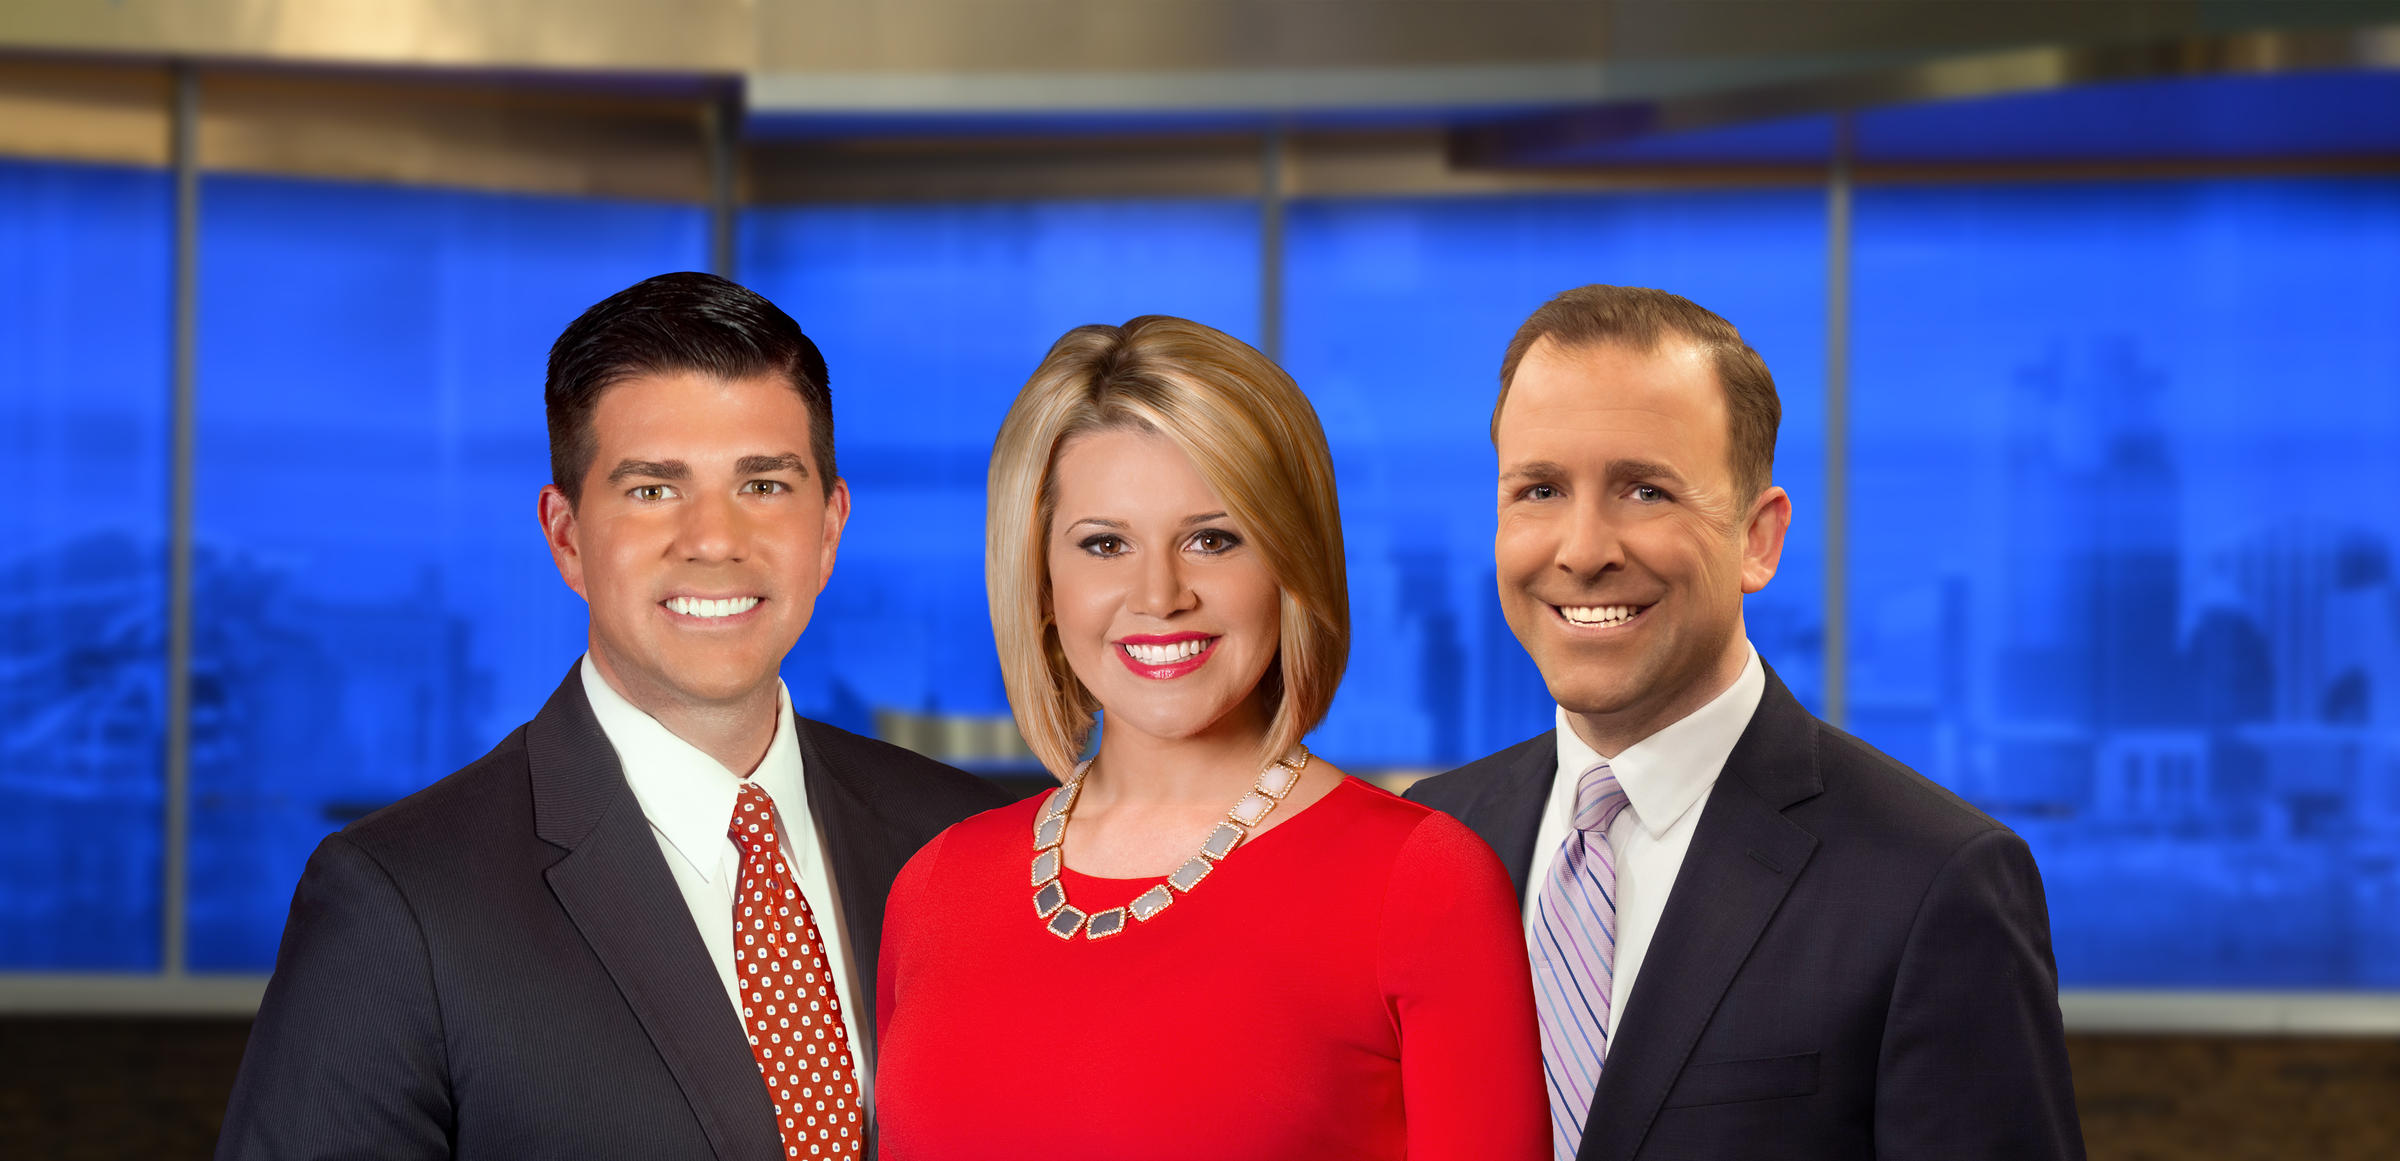 After February Sweeps Come TV News Changes | WVXU